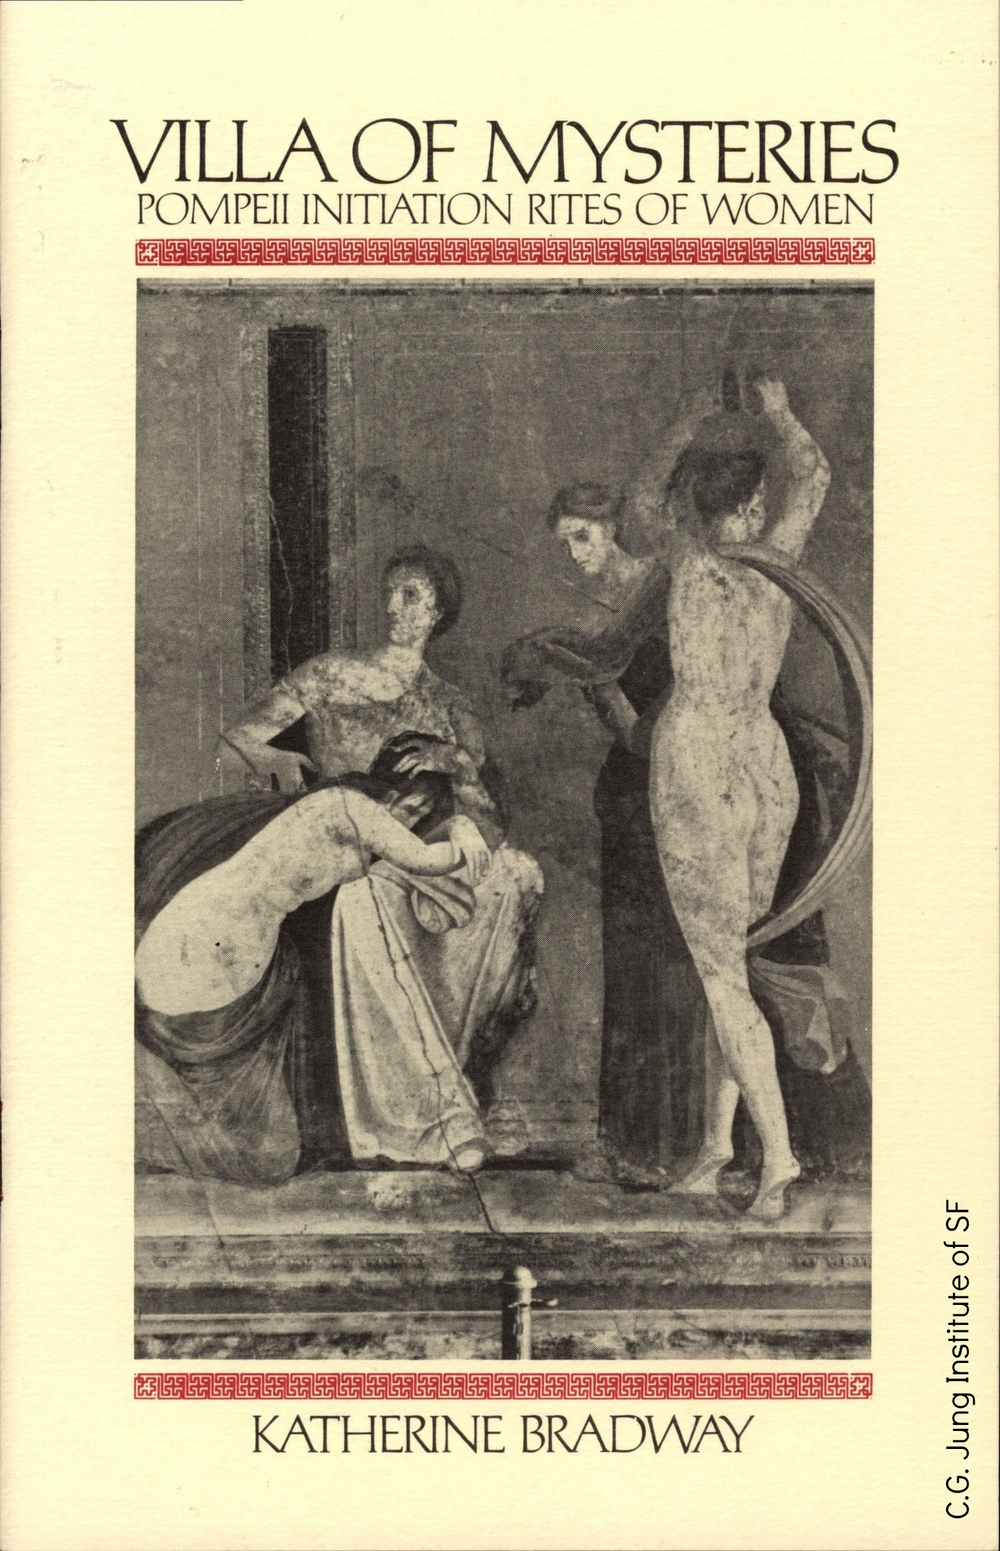 """Villa of Mysteries: Pompeii Initiation Rites of Women"" (Kay Bradway, 1982). Signed copy."